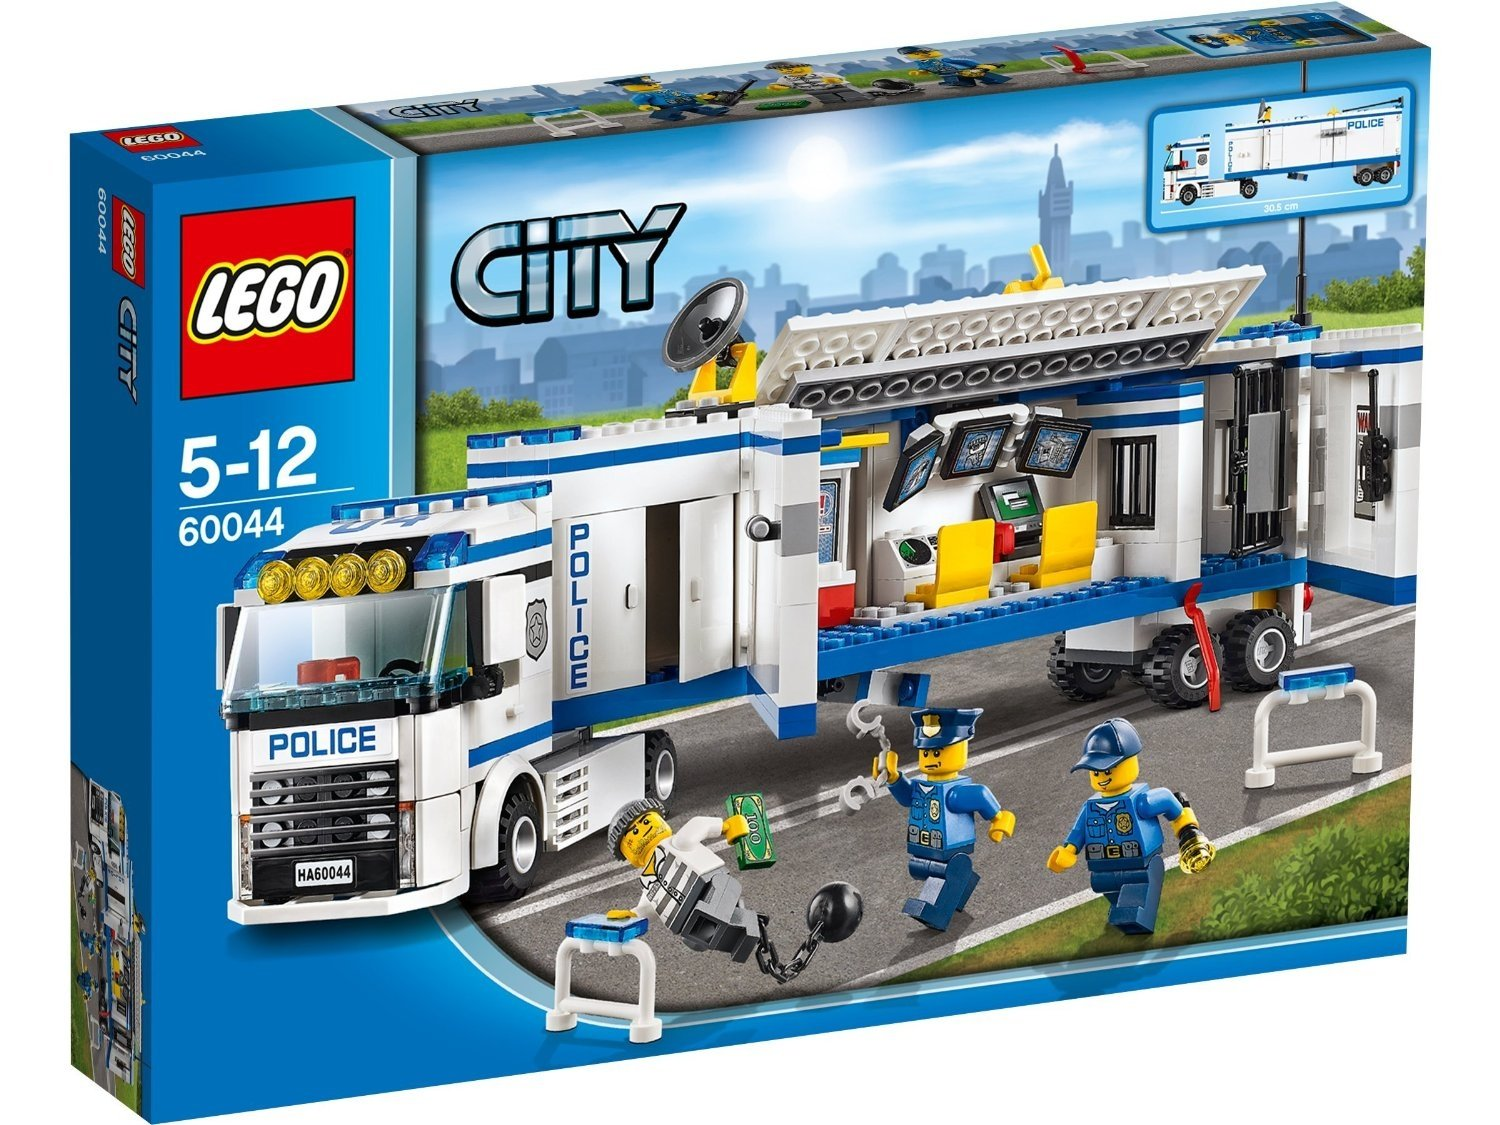 60044 LEGO City Mobile Police Unit Control Room Truck with 3 Minifigures